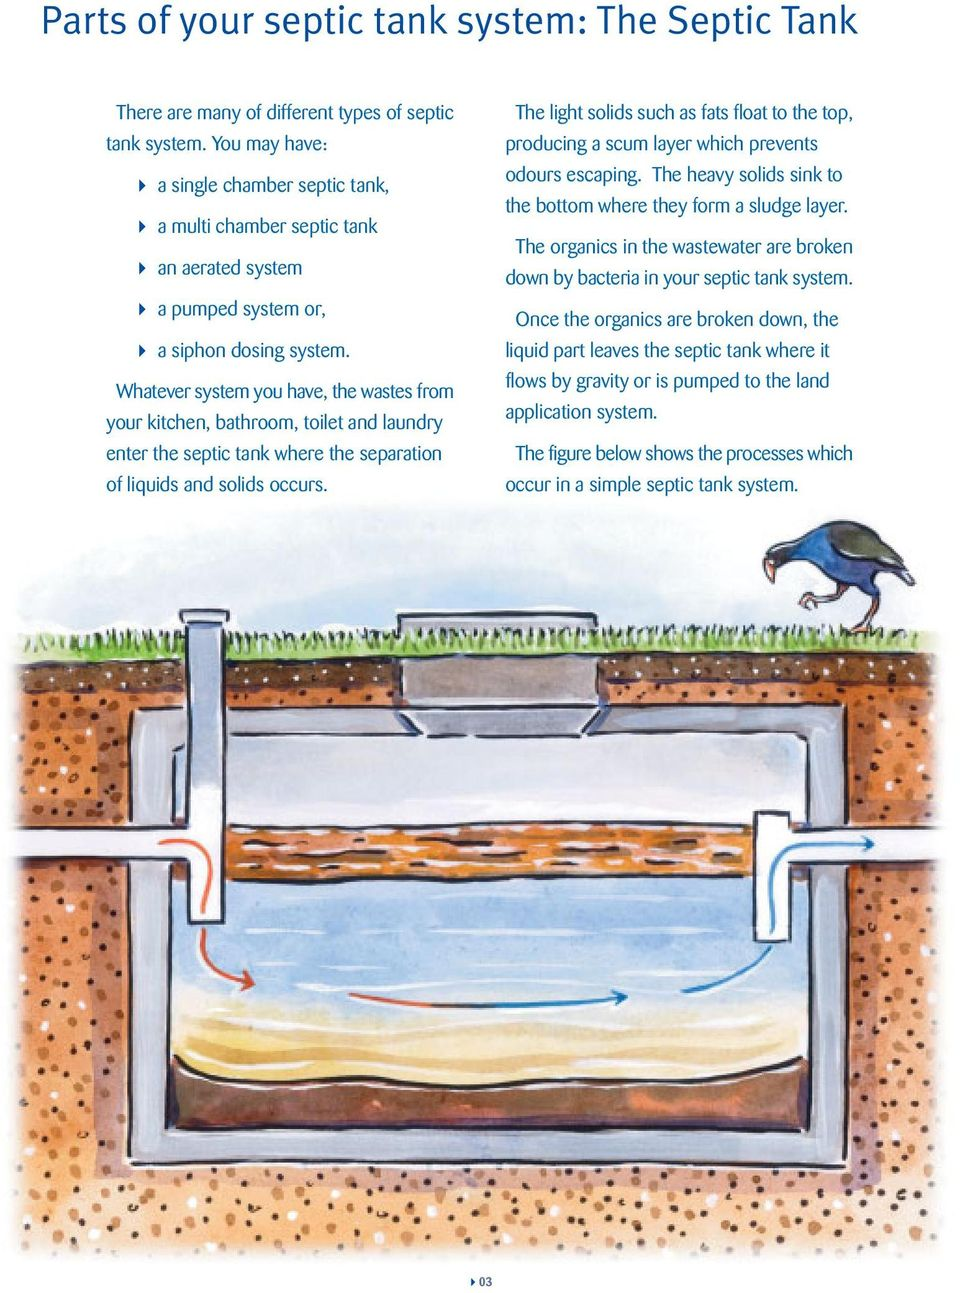 Whatever system you have, the wastes from your kitchen, bathroom, toilet and laundry enter the septic tank where the separation of liquids and solids occurs.